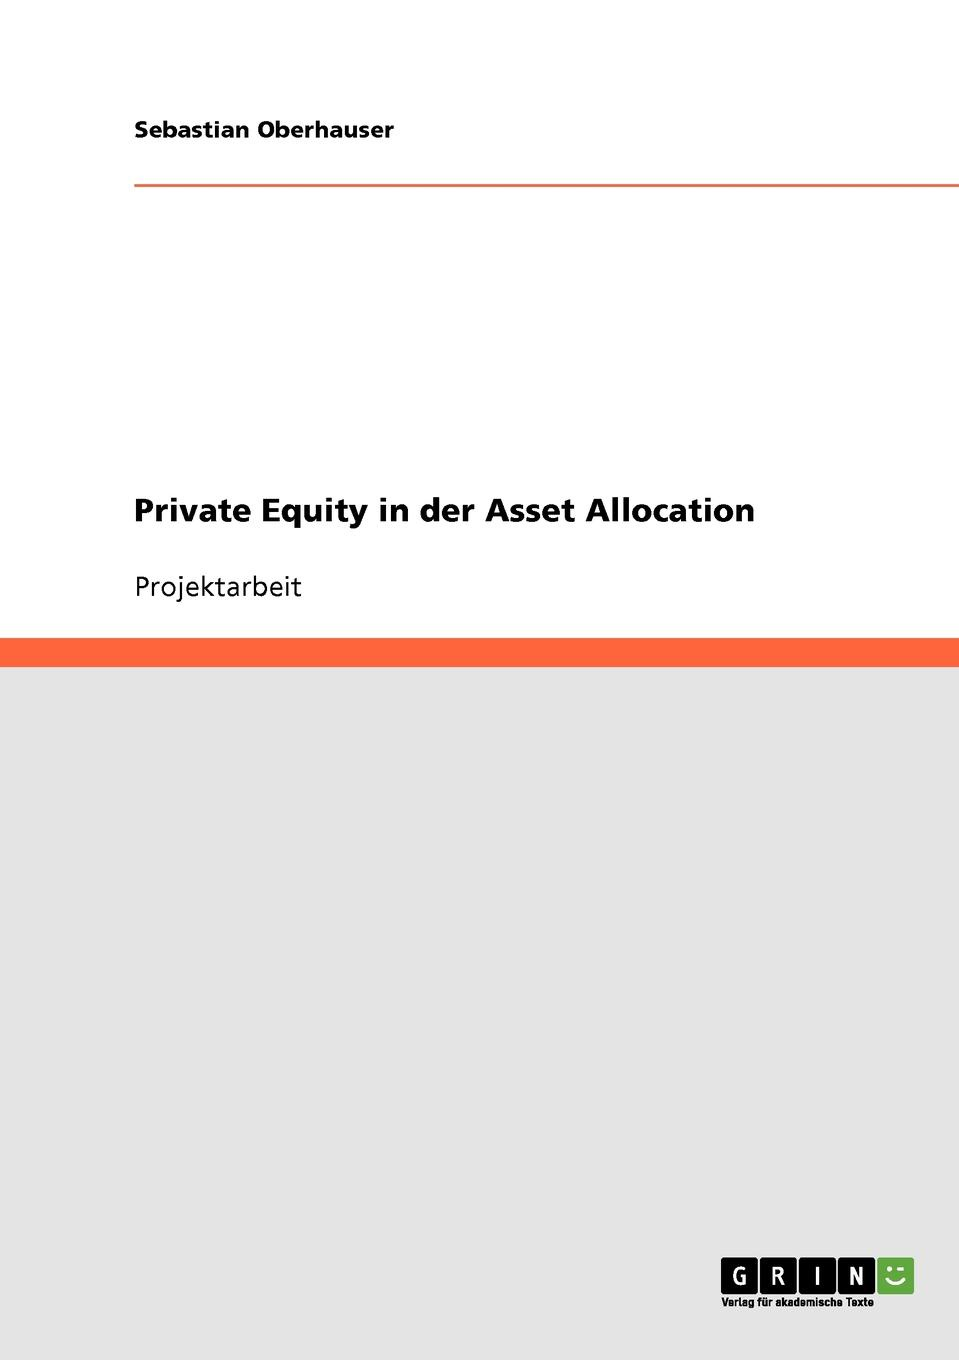 Sebastian Oberhauser Private Equity in der Asset Allocation